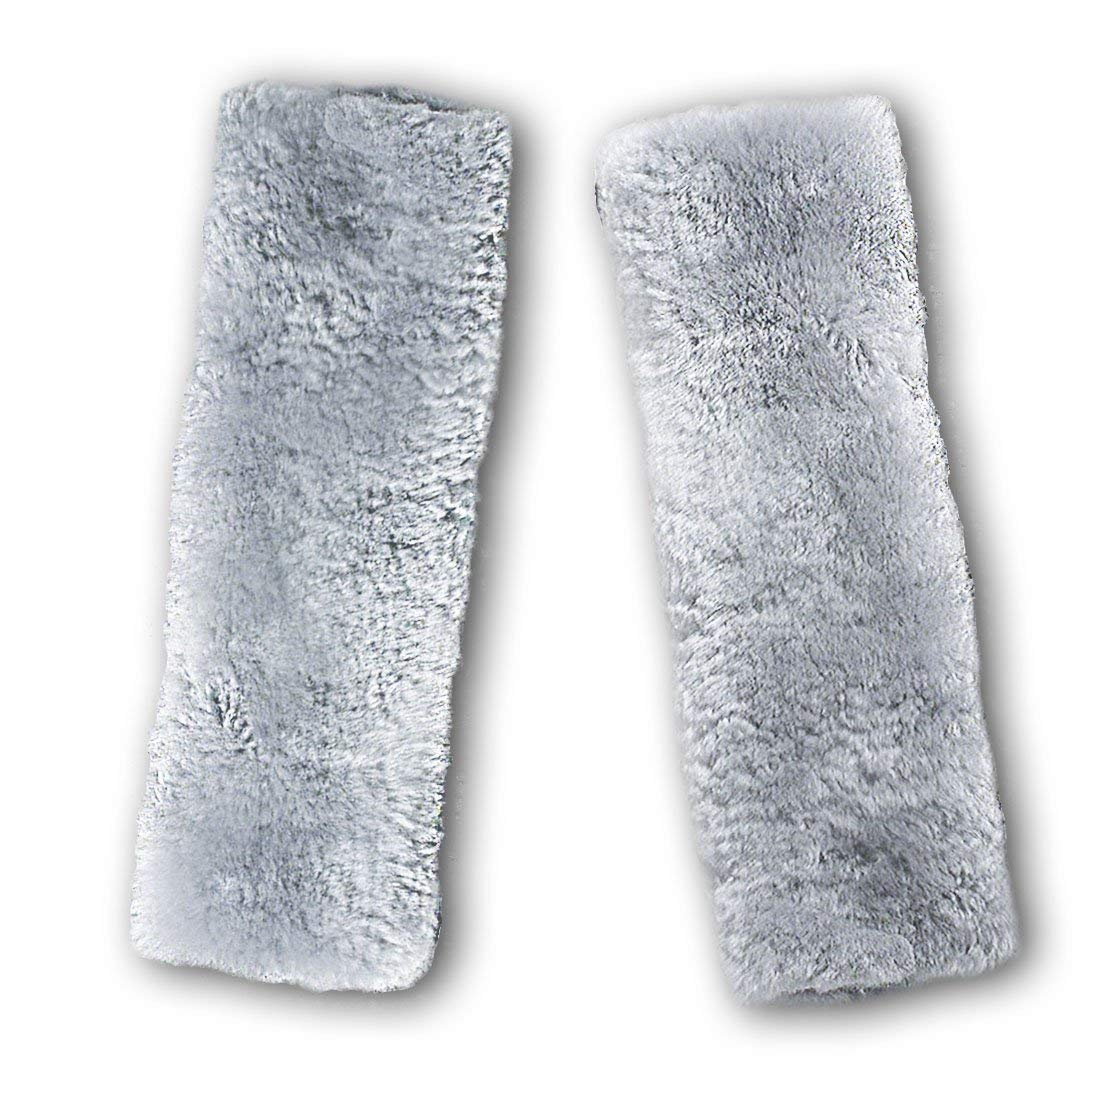 IPELY Soft Faux Sheepskin Seat Belt Shoulder Pad- Two Packs- A Must Have for All Car Owners for a More Comfortable Driving (Grey)